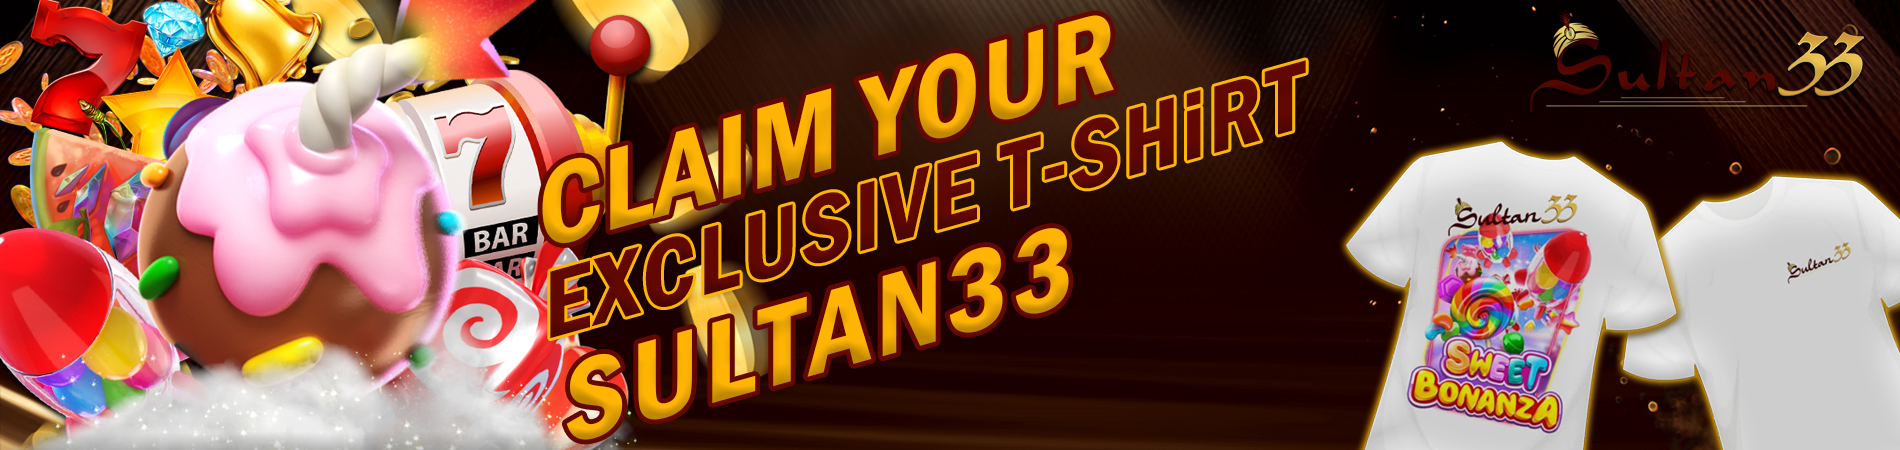 Event T-Shirt Exclusive SULTAN33